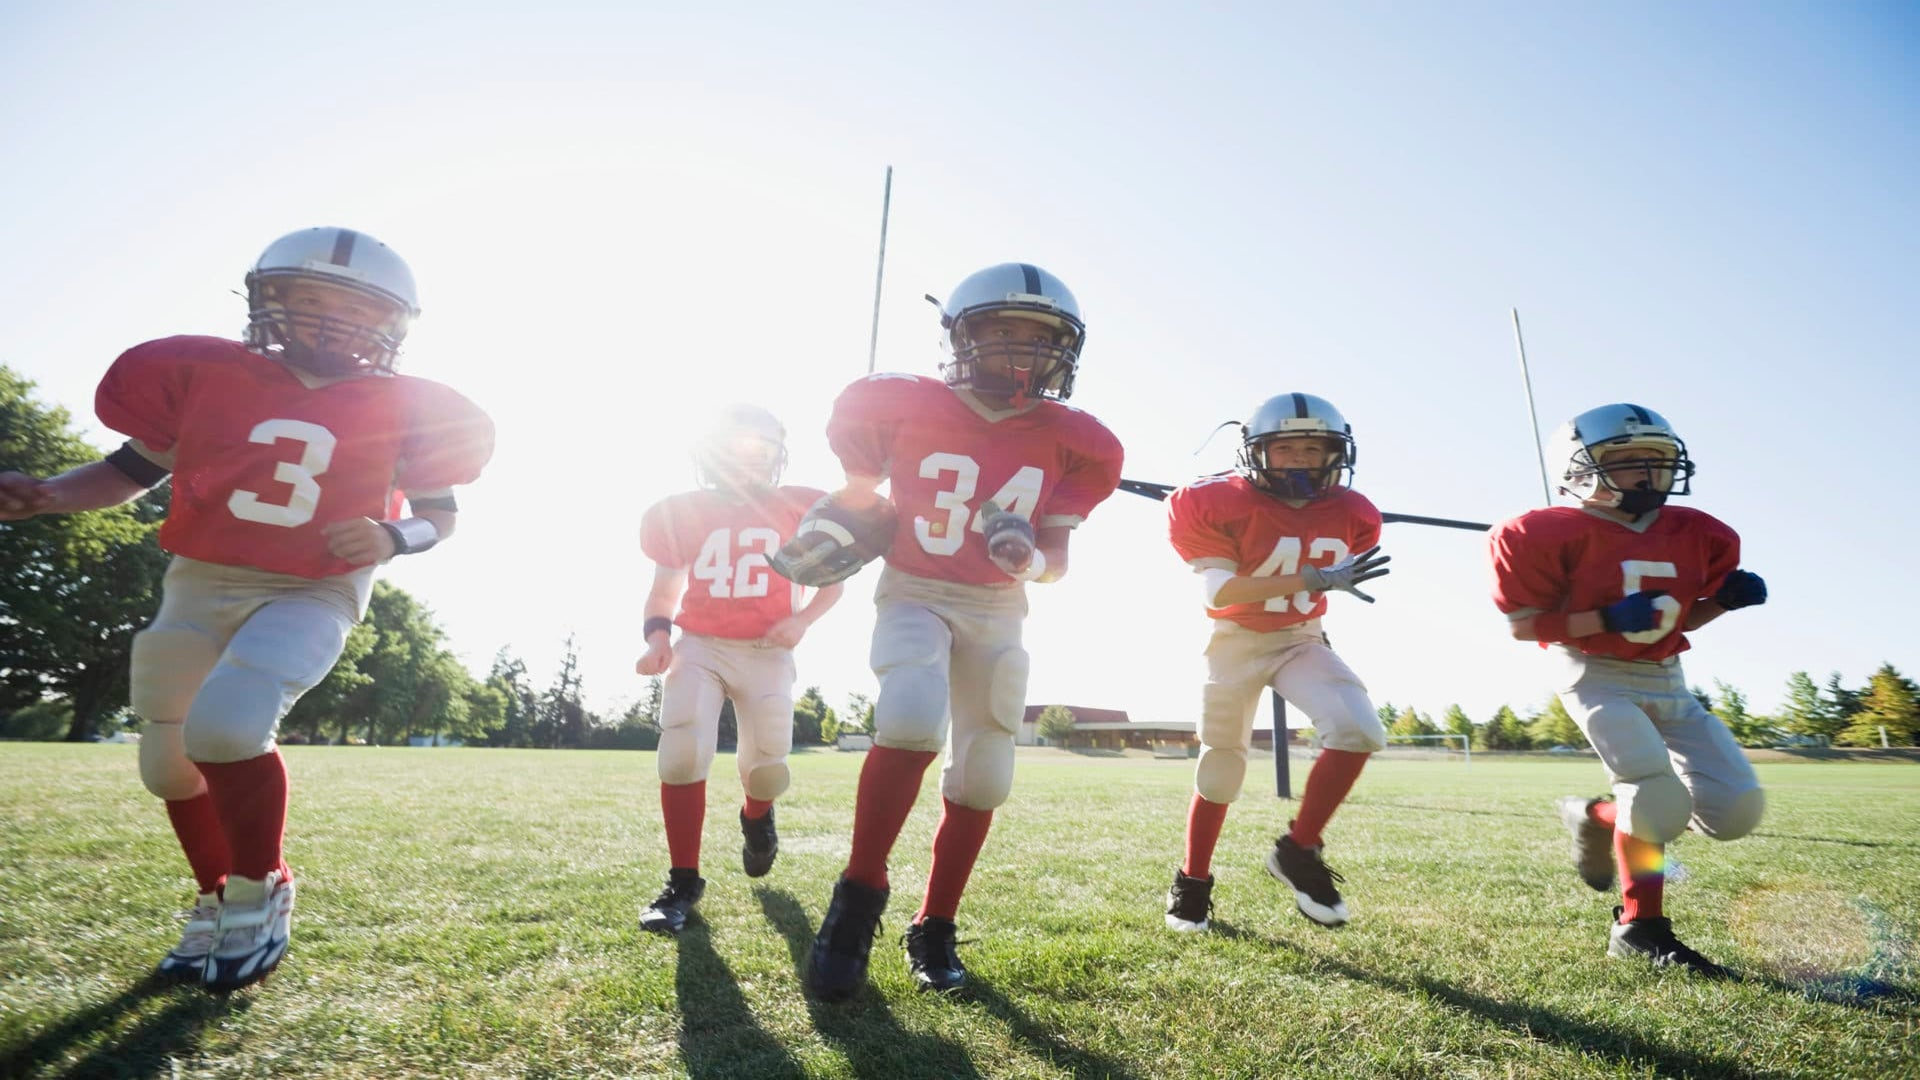 Black Youth Football Team Barred From Playoffs Because Of Their Race, President Claims